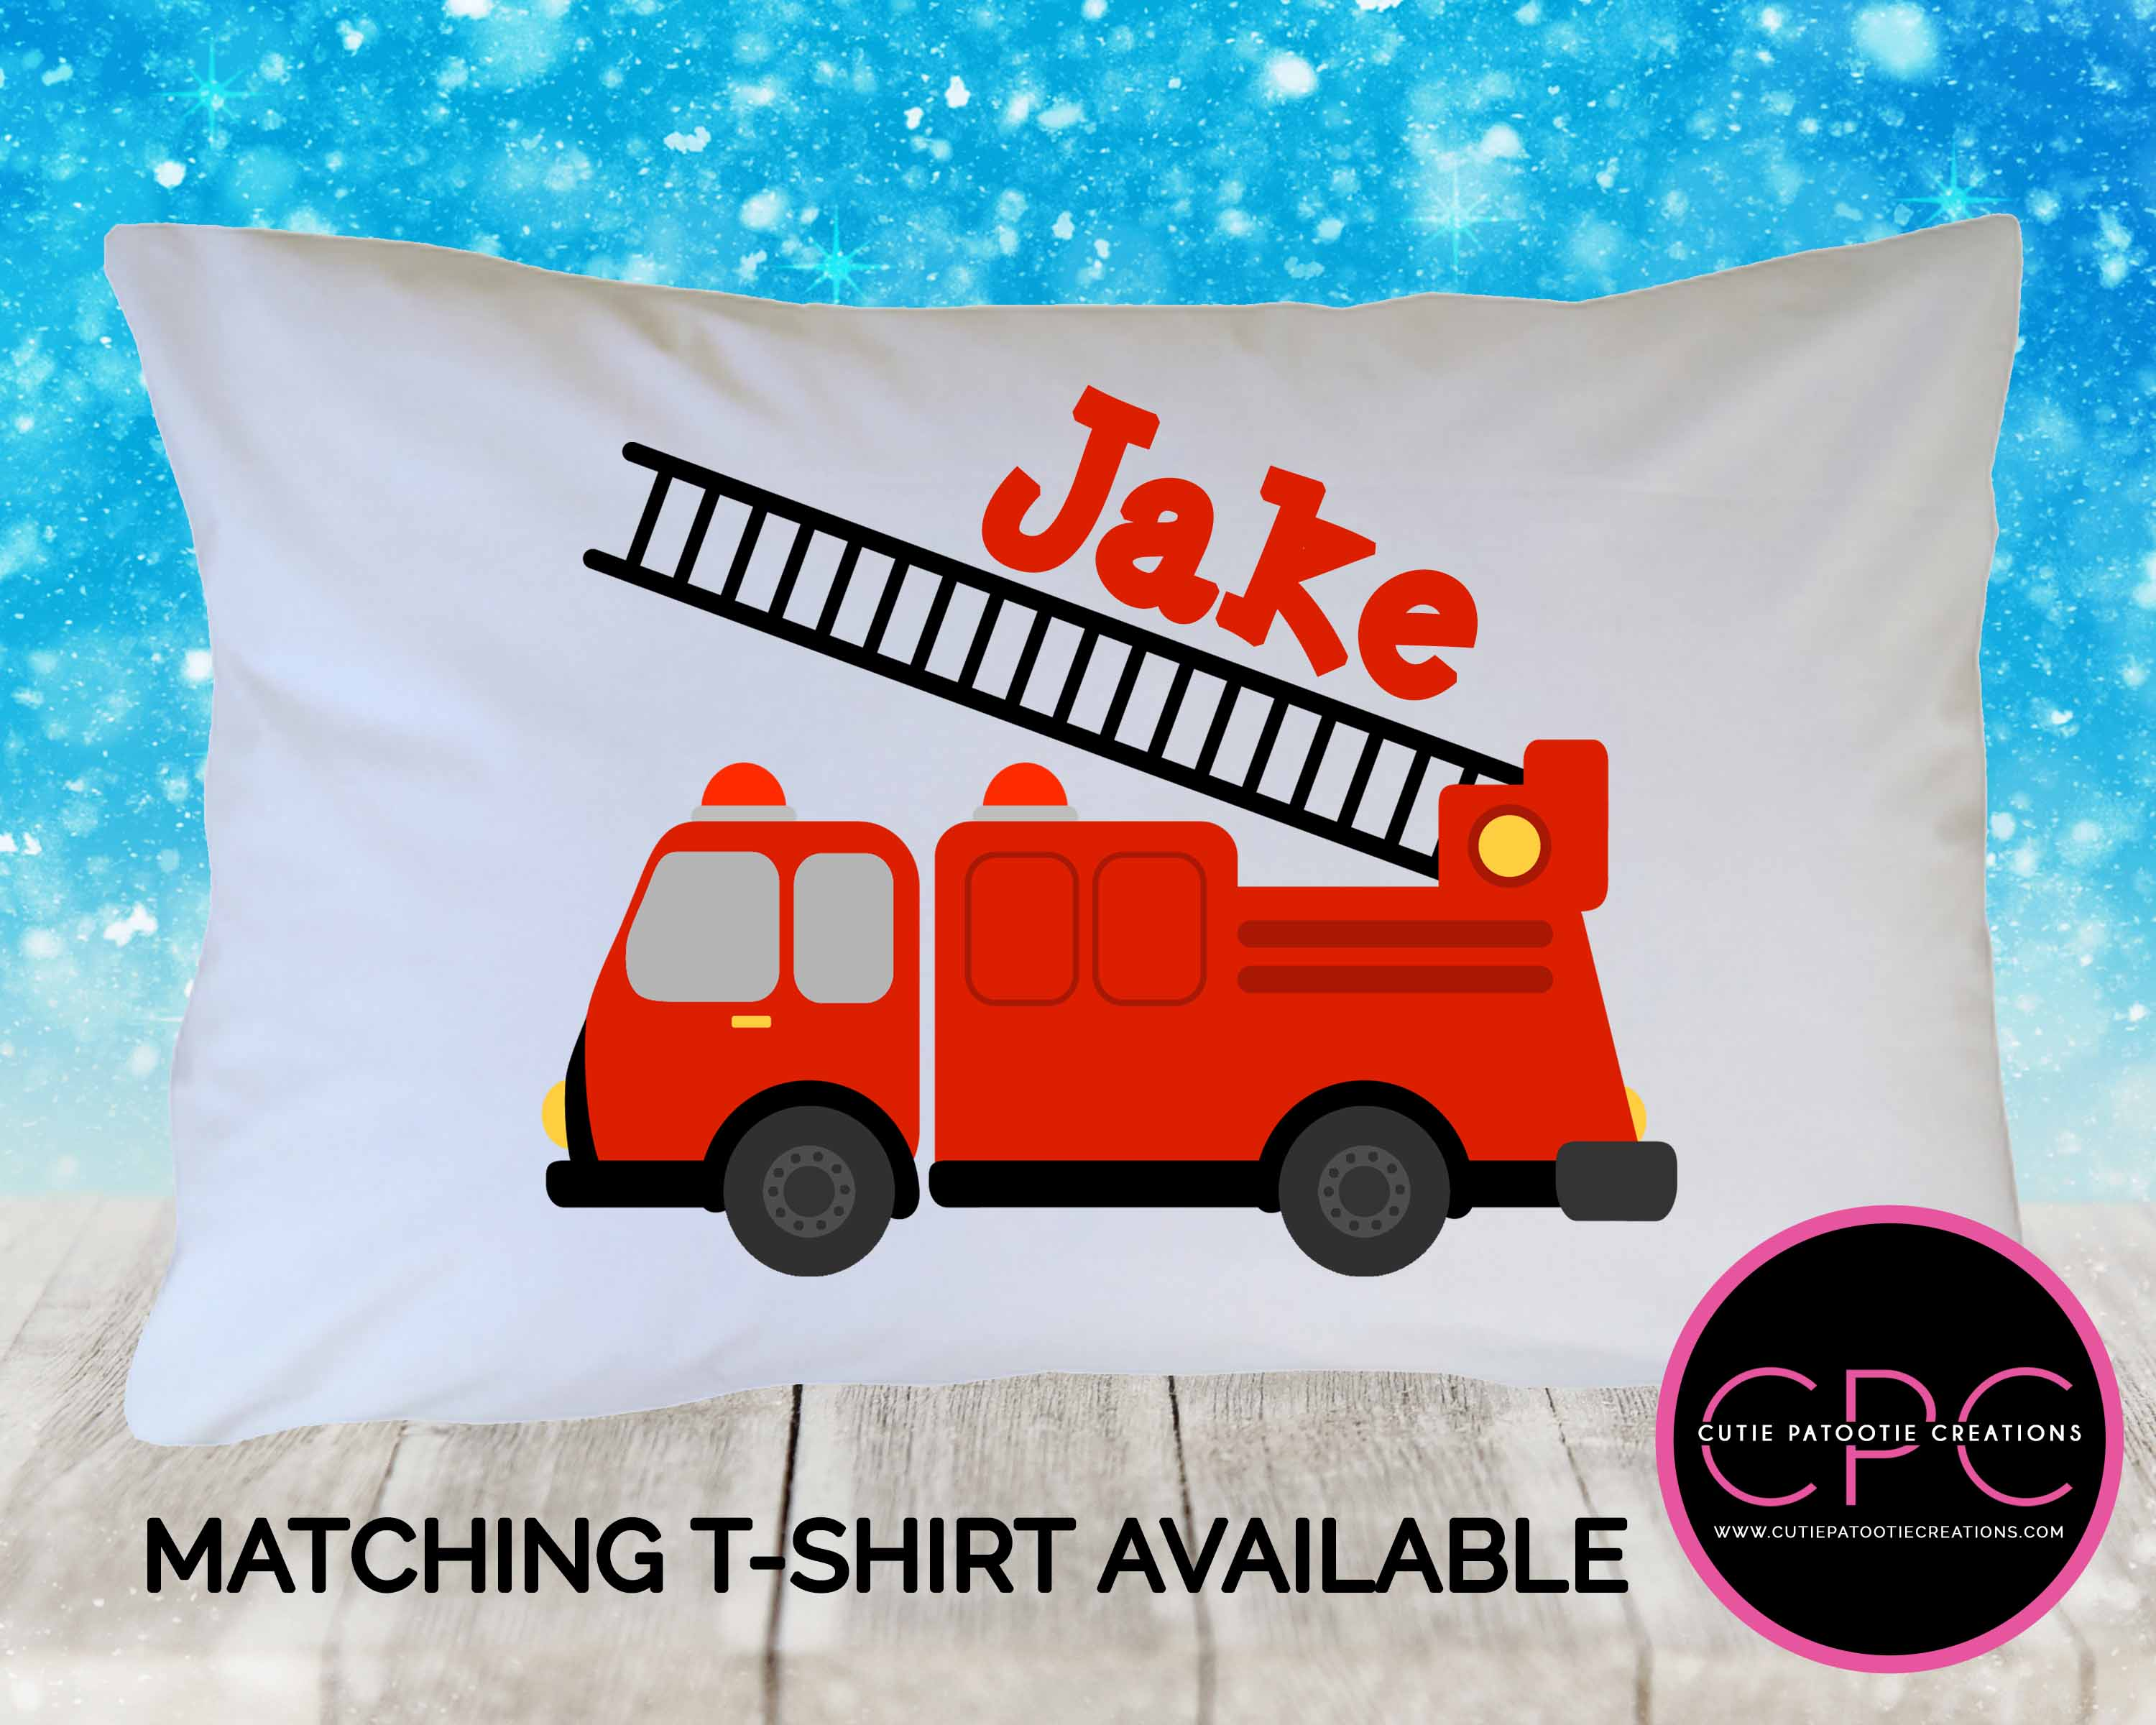 personalized red firetruck pillowcase for toddlers kids teens adults cutie patootie creations